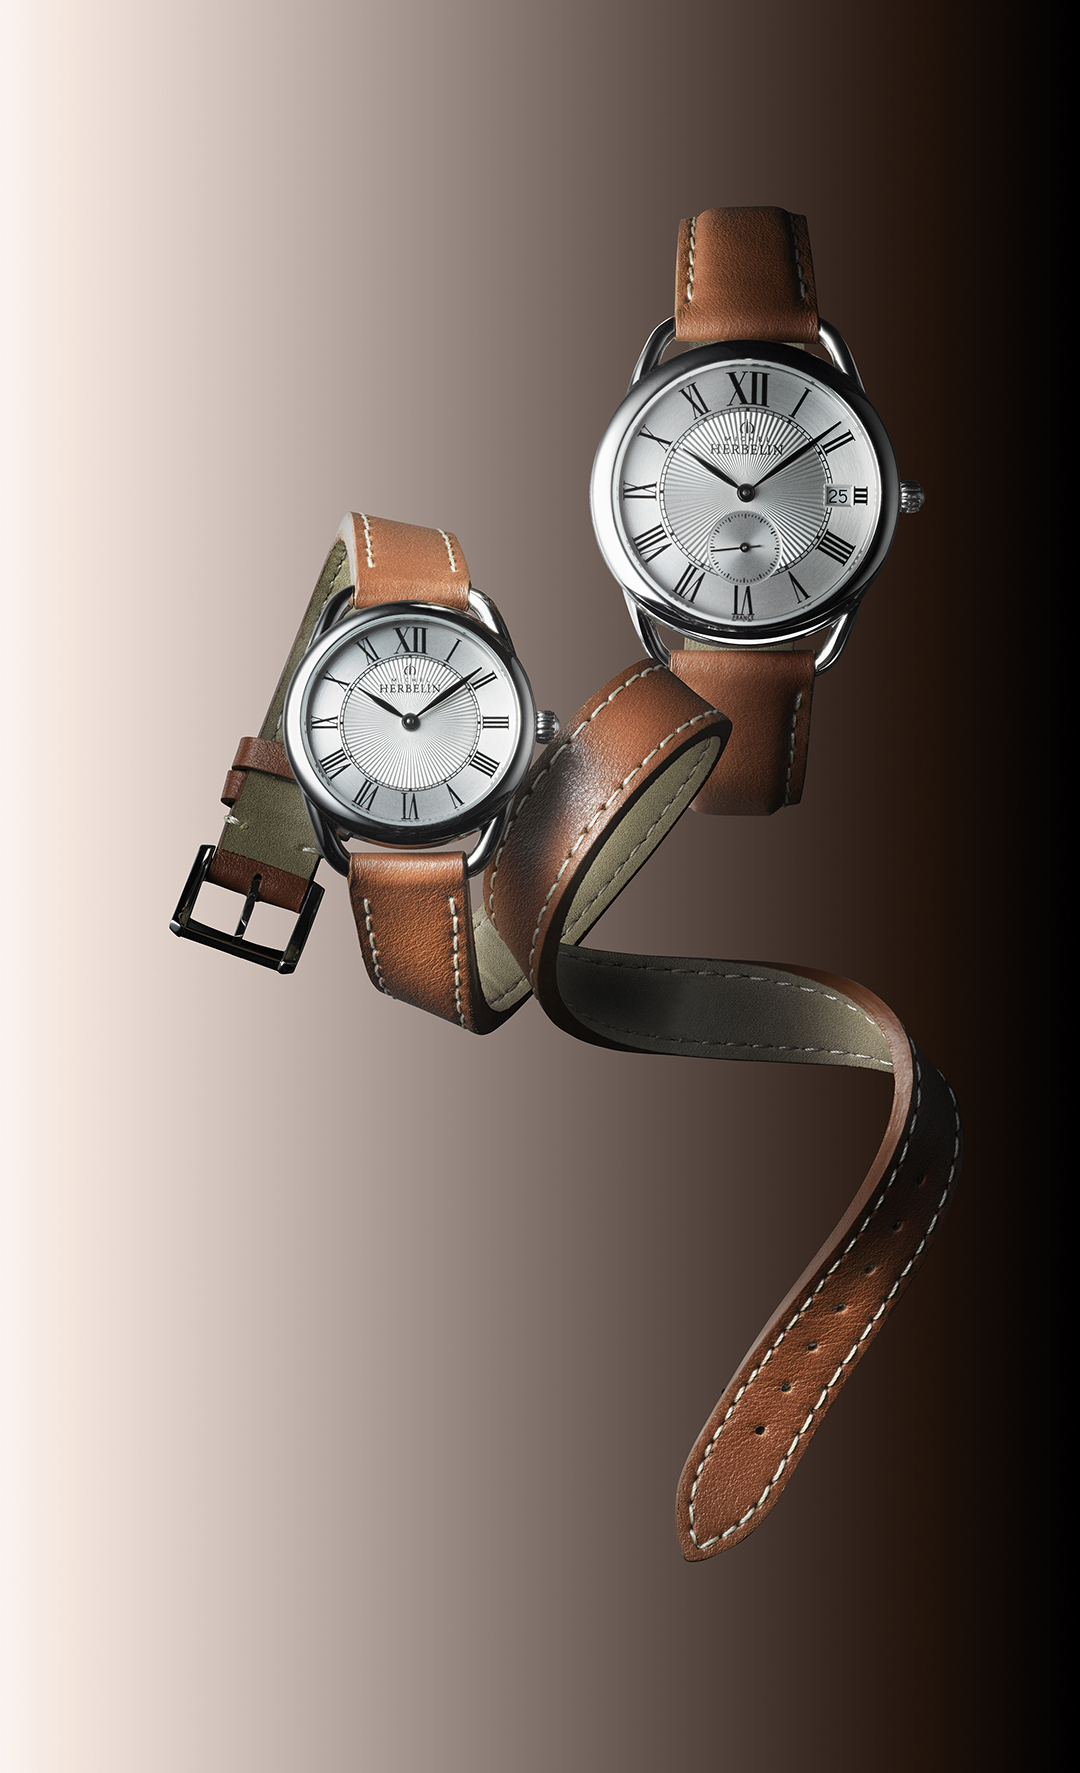 Inspiration watch with brown leather strap